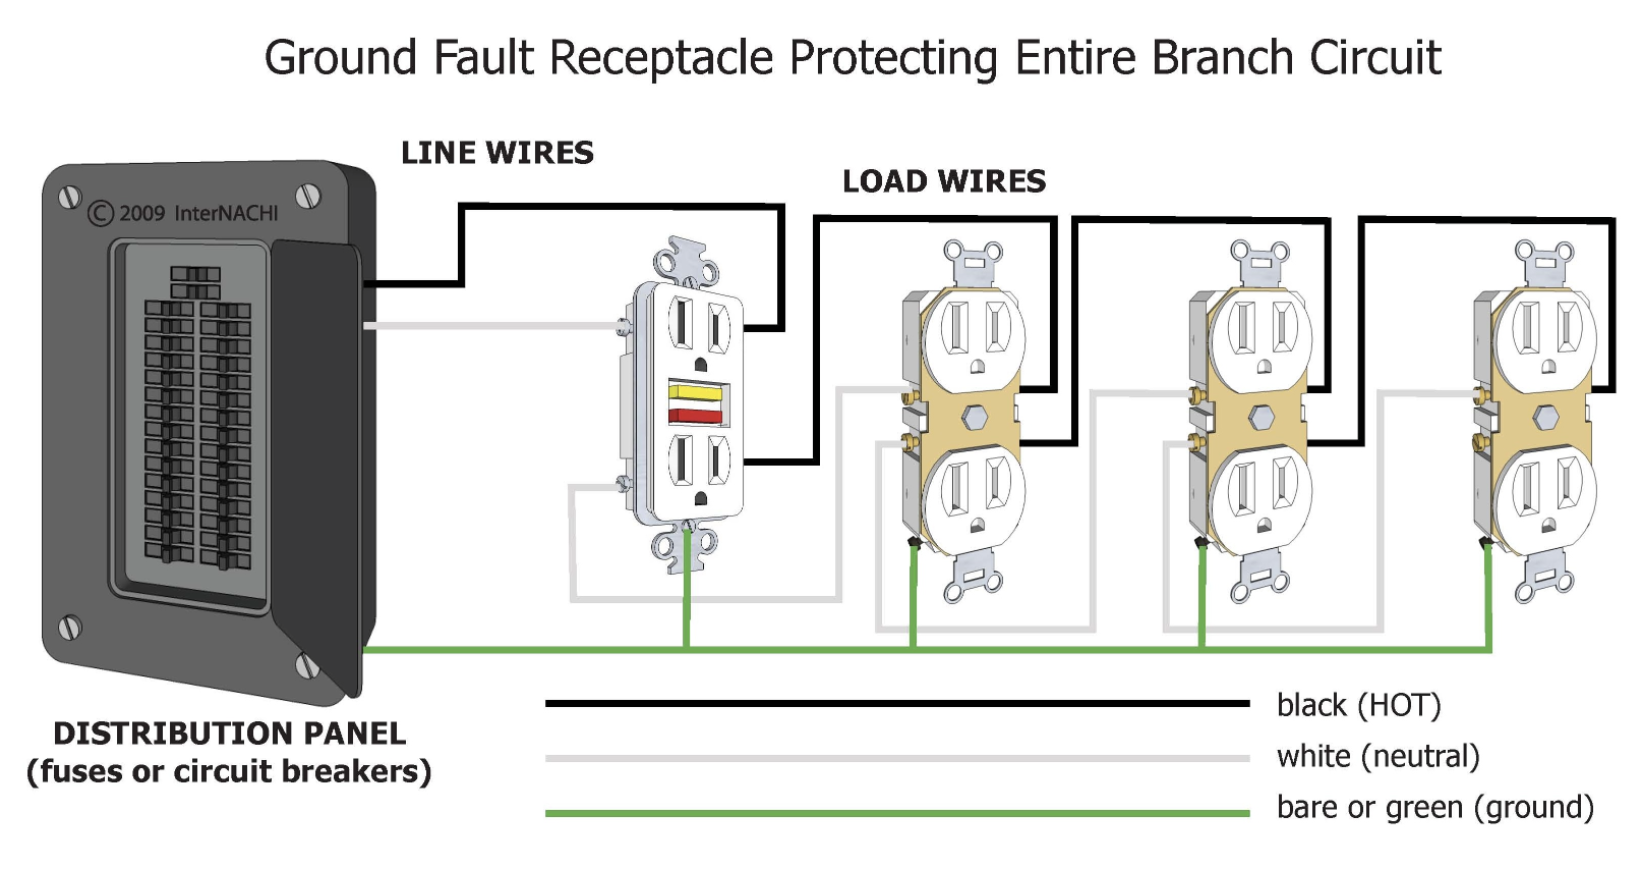 Inspecting Gfci And Afci Protection Internachi Electrical Circuit Diagram Outlet Wiring House Wiring